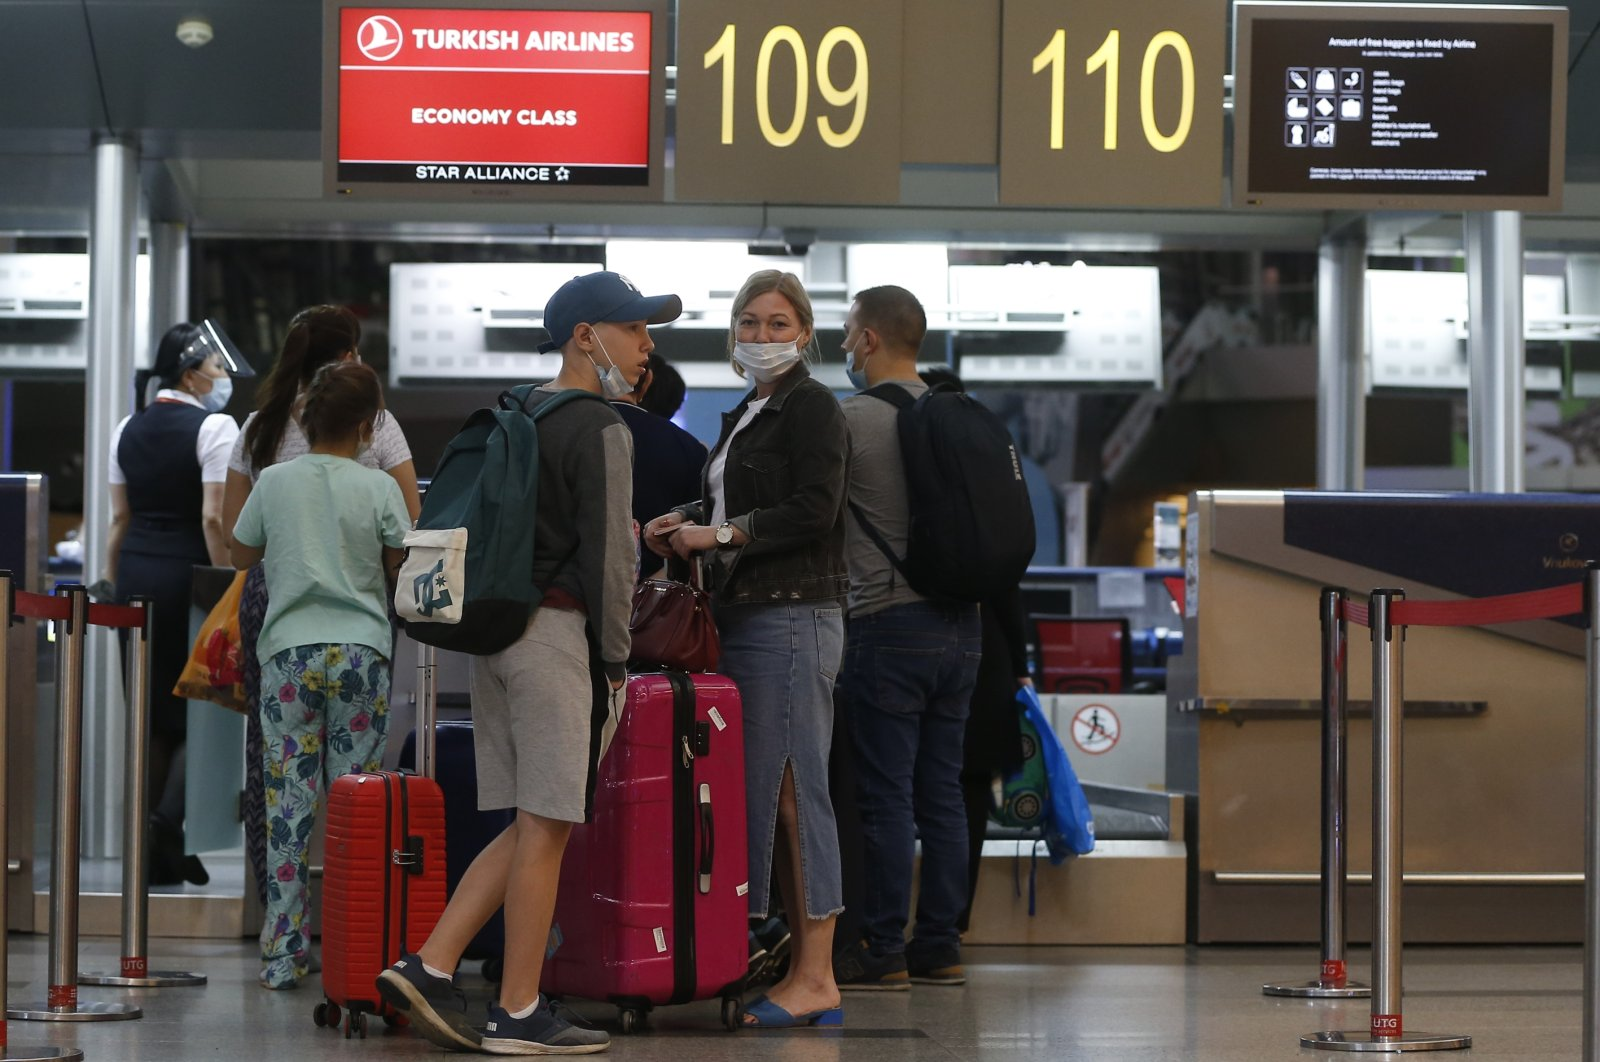 Passengers complete their check-ins for an Istanbul-bound Turkish Airlines flight at Vnukovo Airport in Moscow, Russia, Aug. 1, 2020. (AA Photo)